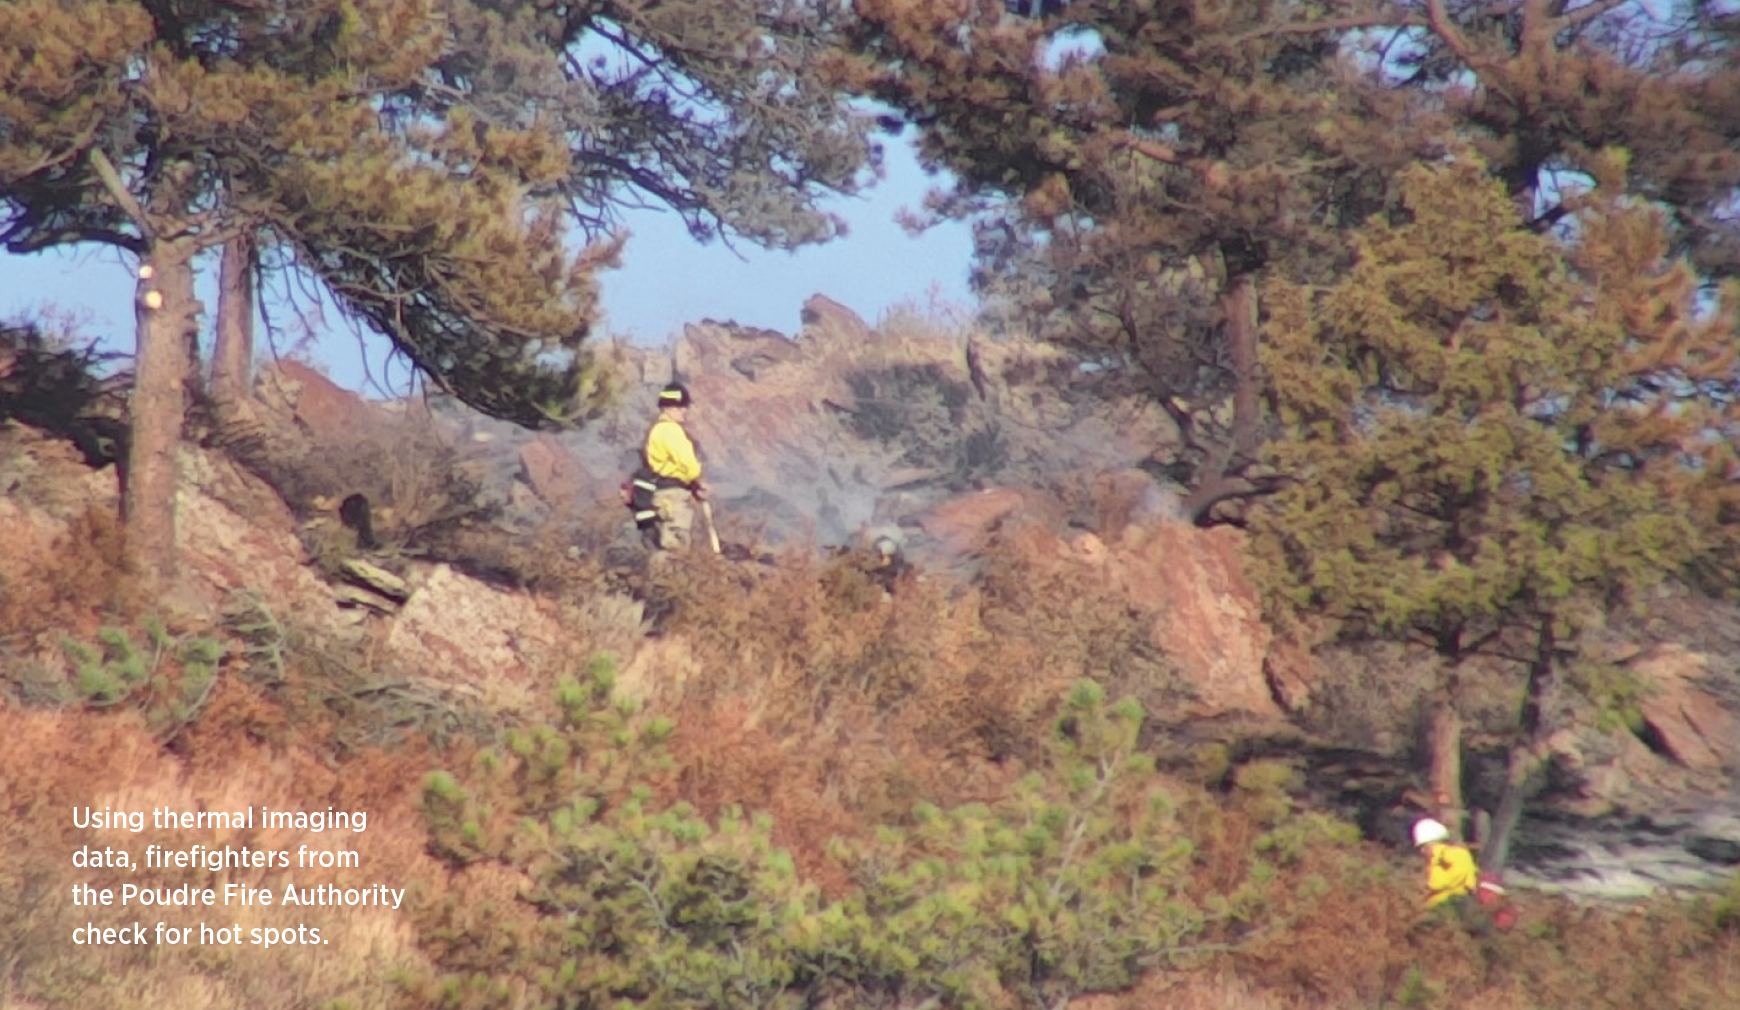 Using thermal imaging data, fi refi ghters from the Poudre Fire Authority check for hot spots.